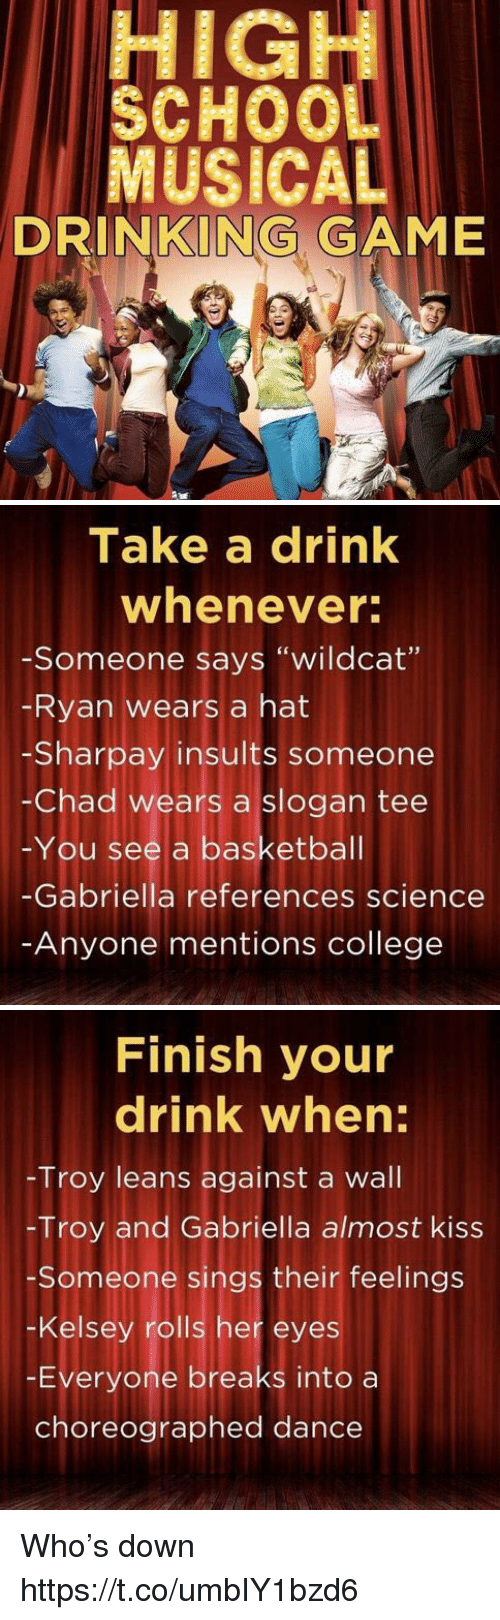 """walle: HIGH  SCHOO  MUSICAL  DRINKING GAME   Take a drink  whenever  -Someone says """"wildcat""""  Ryan wears a hat  -Sharpay insults someone  -Chad wears a slogan tee  -You see a basketbal  -Gabriella references science  Anyone mentions college   Finish your  drink when:  Troy leans against a wall  -Troy and Gabriella almost kiss  Someone sings their feelings  -Kelsey rolls her eyes  -Everyone breaks into a  choreographed dance Who's down https://t.co/umbIY1bzd6"""